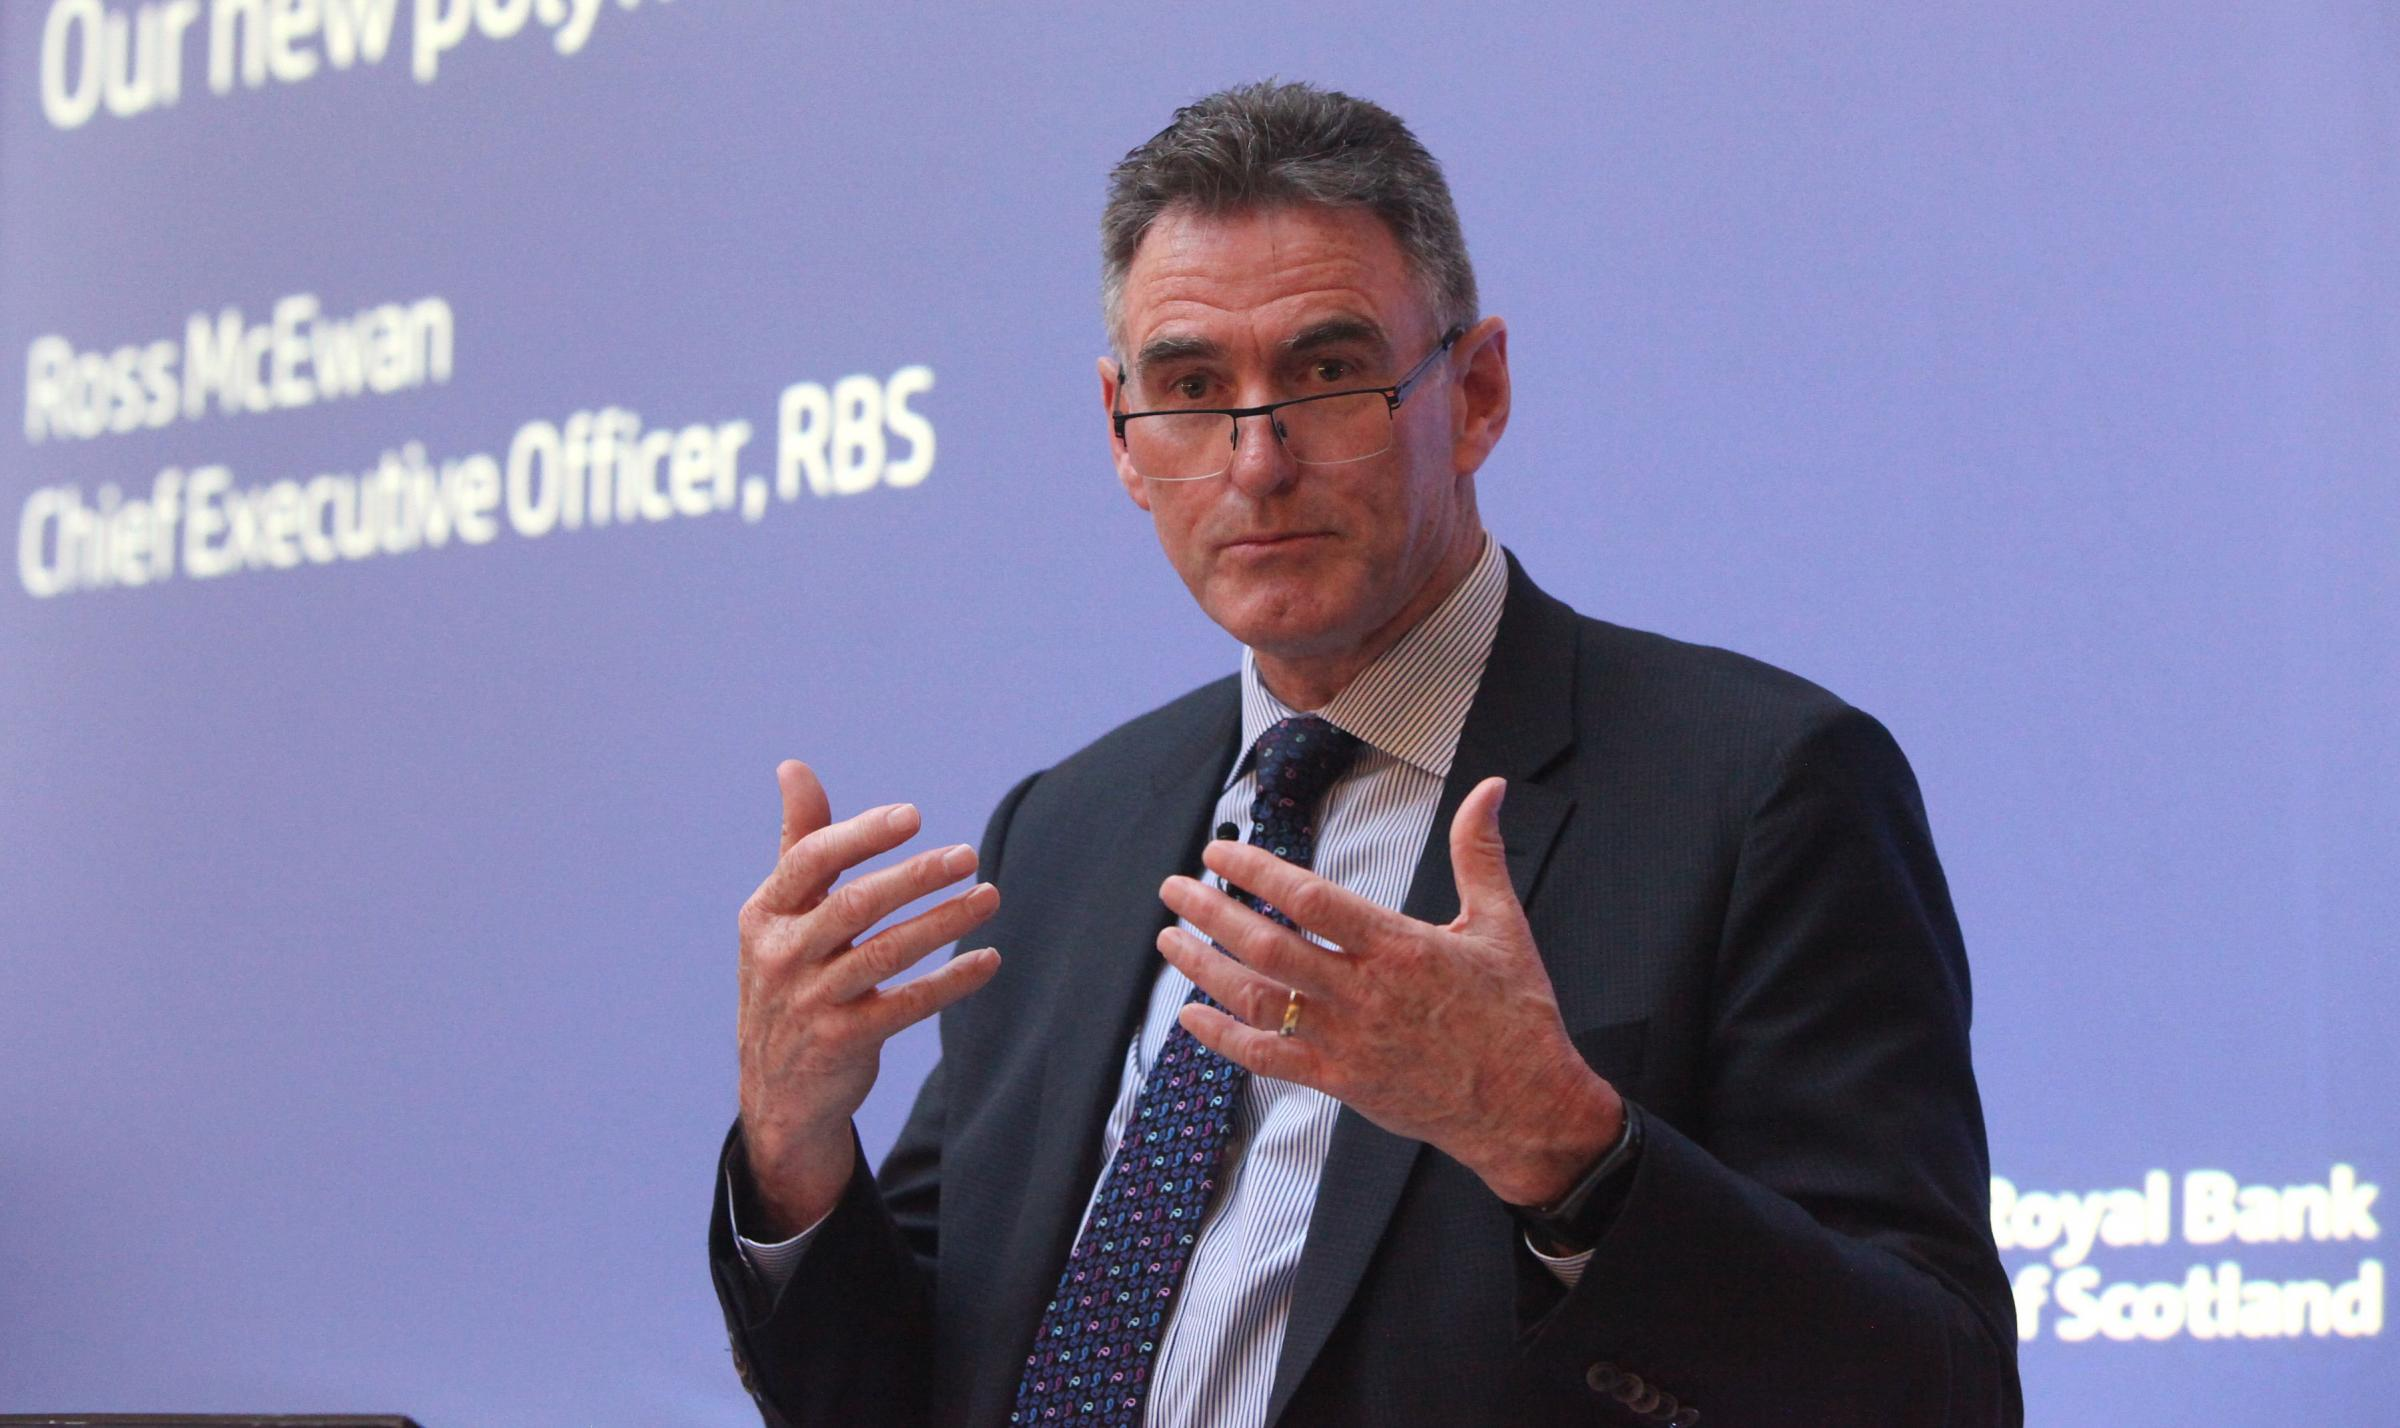 Royal Bank of Scotland (RBS) Hit Hold From Sell